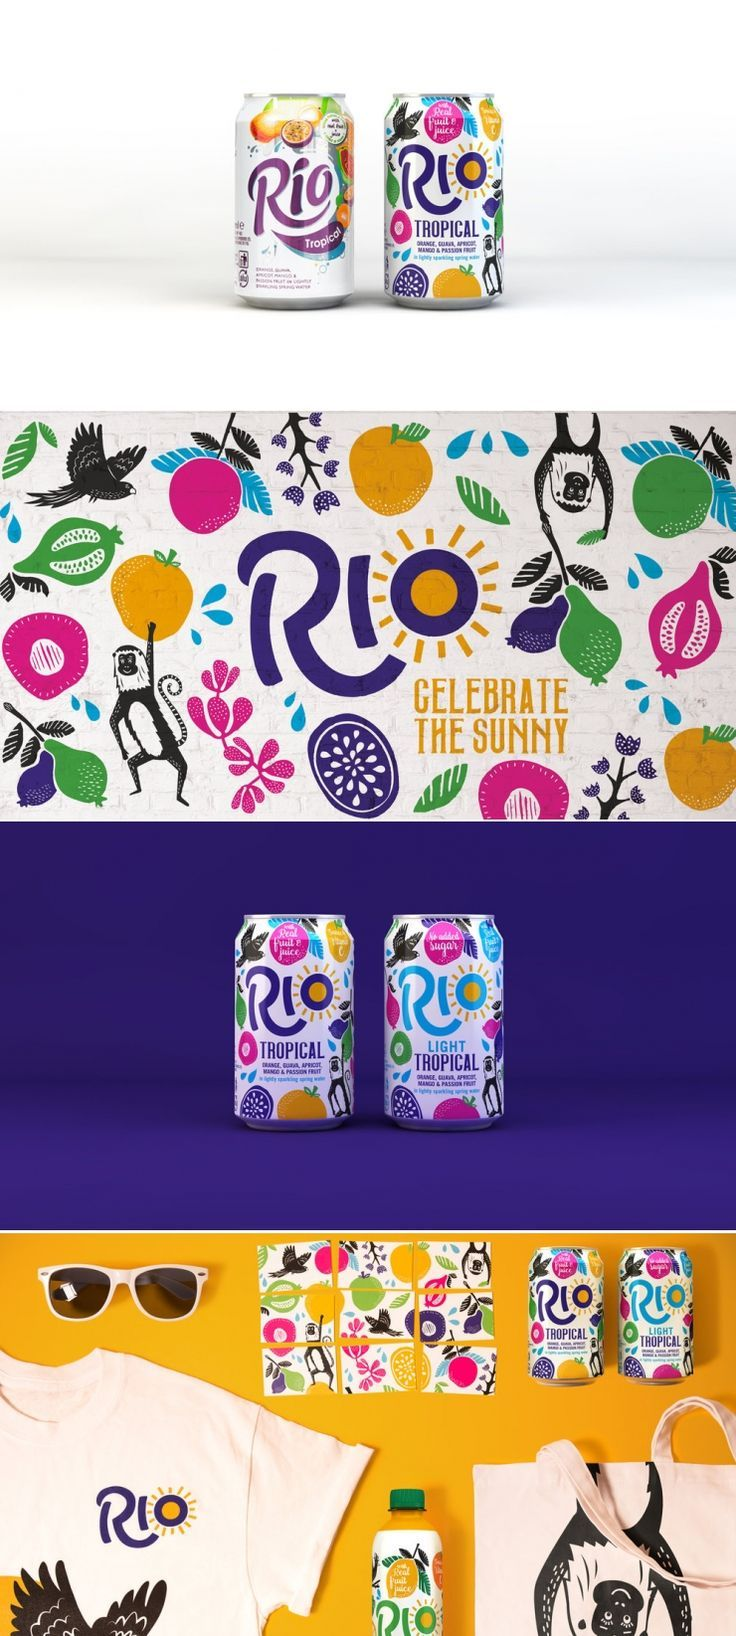 Celebrate the Sunny Moments with Rio Tropical Fruit Juice — The Dieline   Packaging & Branding Design & Innovation News